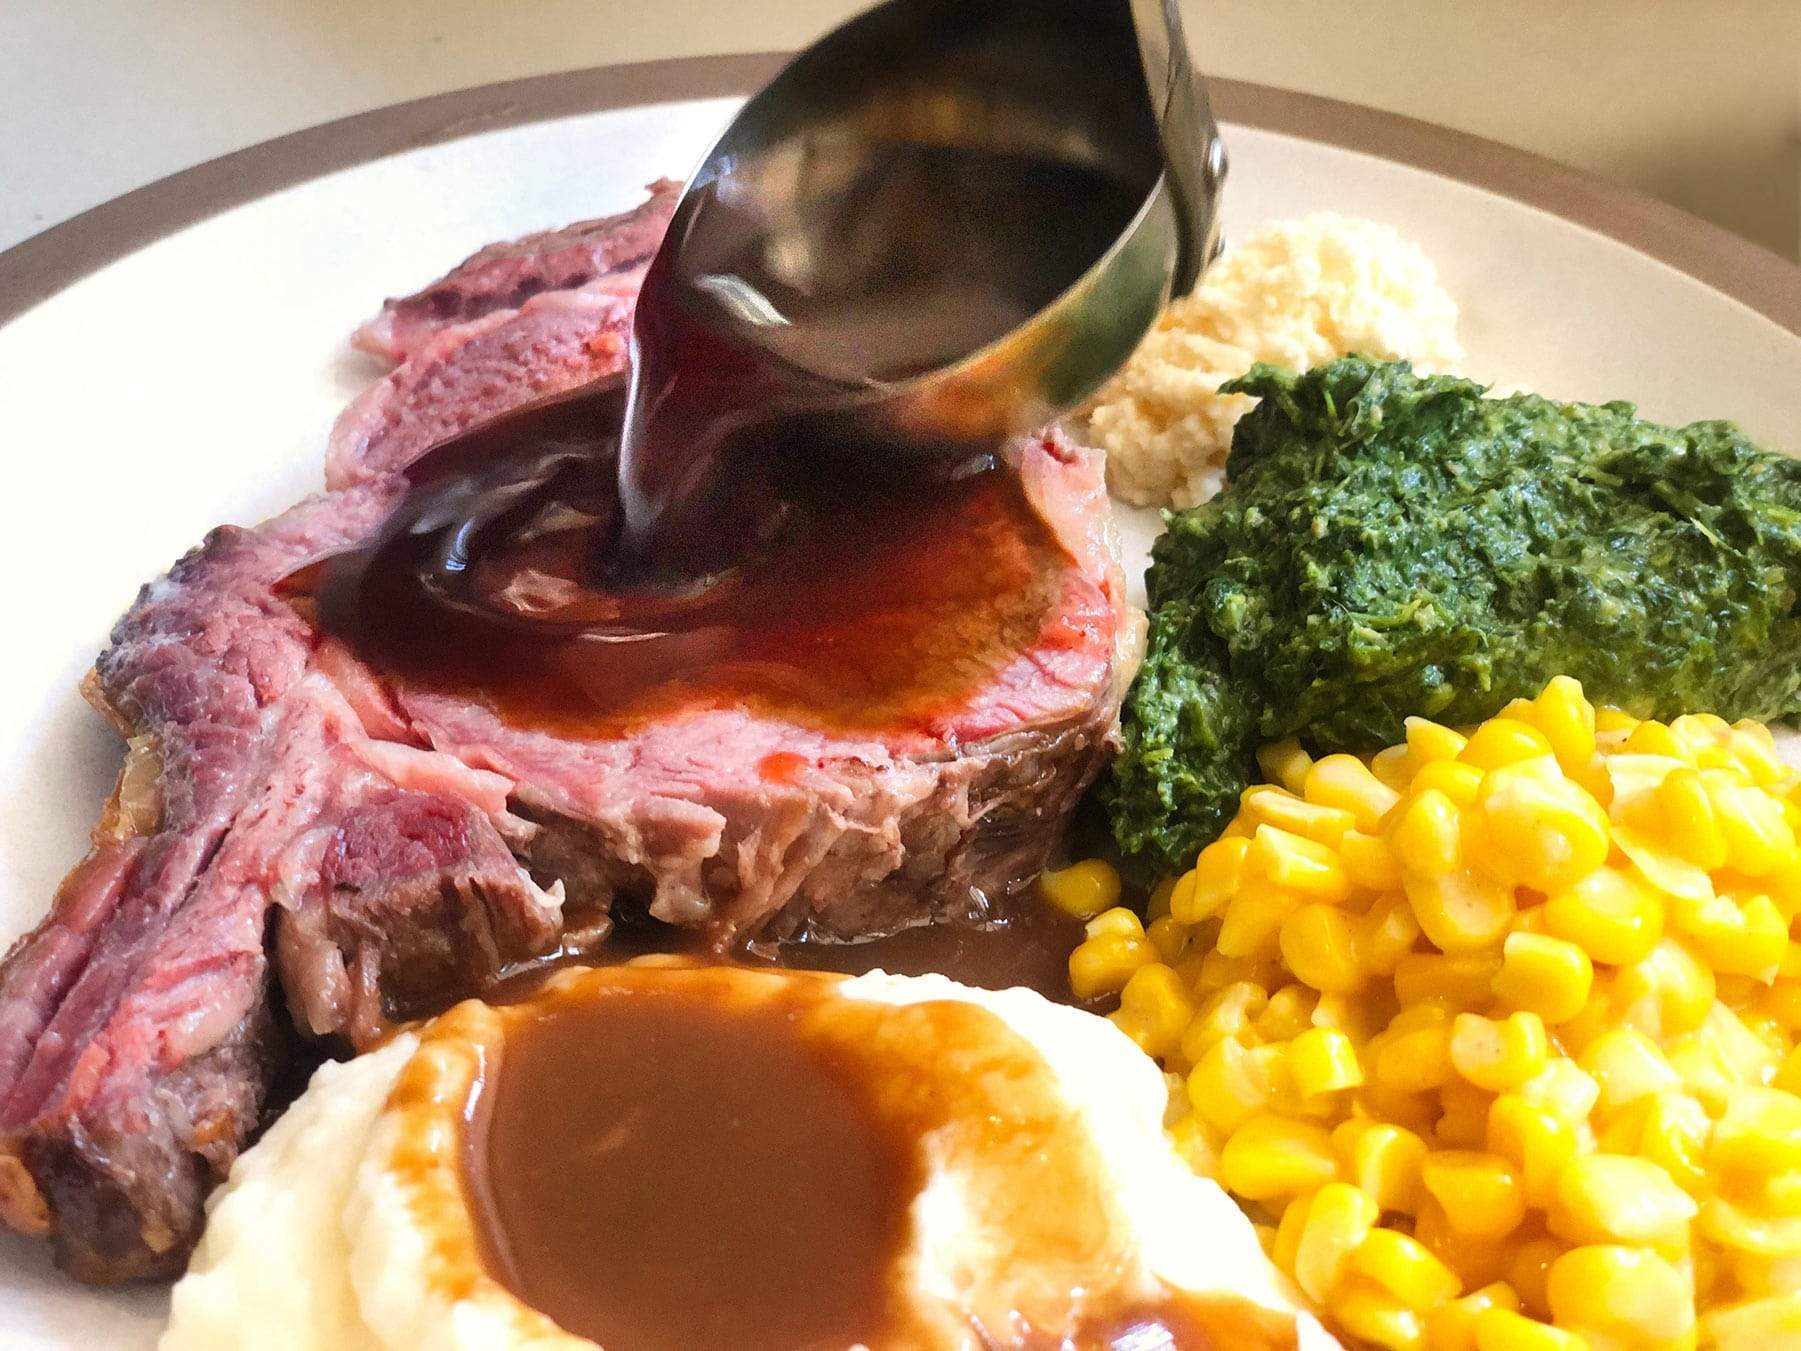 pouring au jus on a cut of prime rib